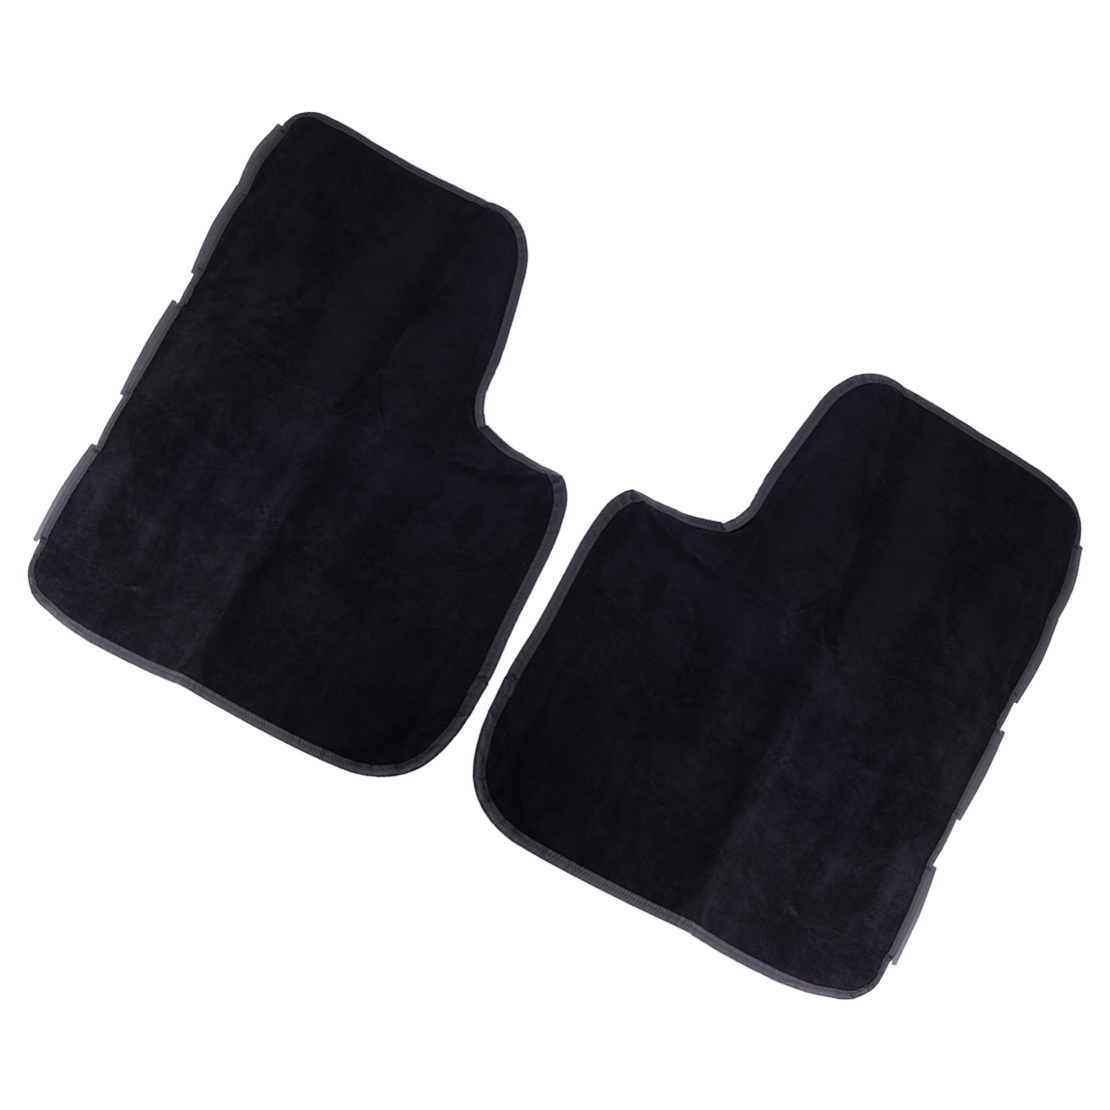 Citall 2pcs Black Car Door Side Border Seat Cover Guard